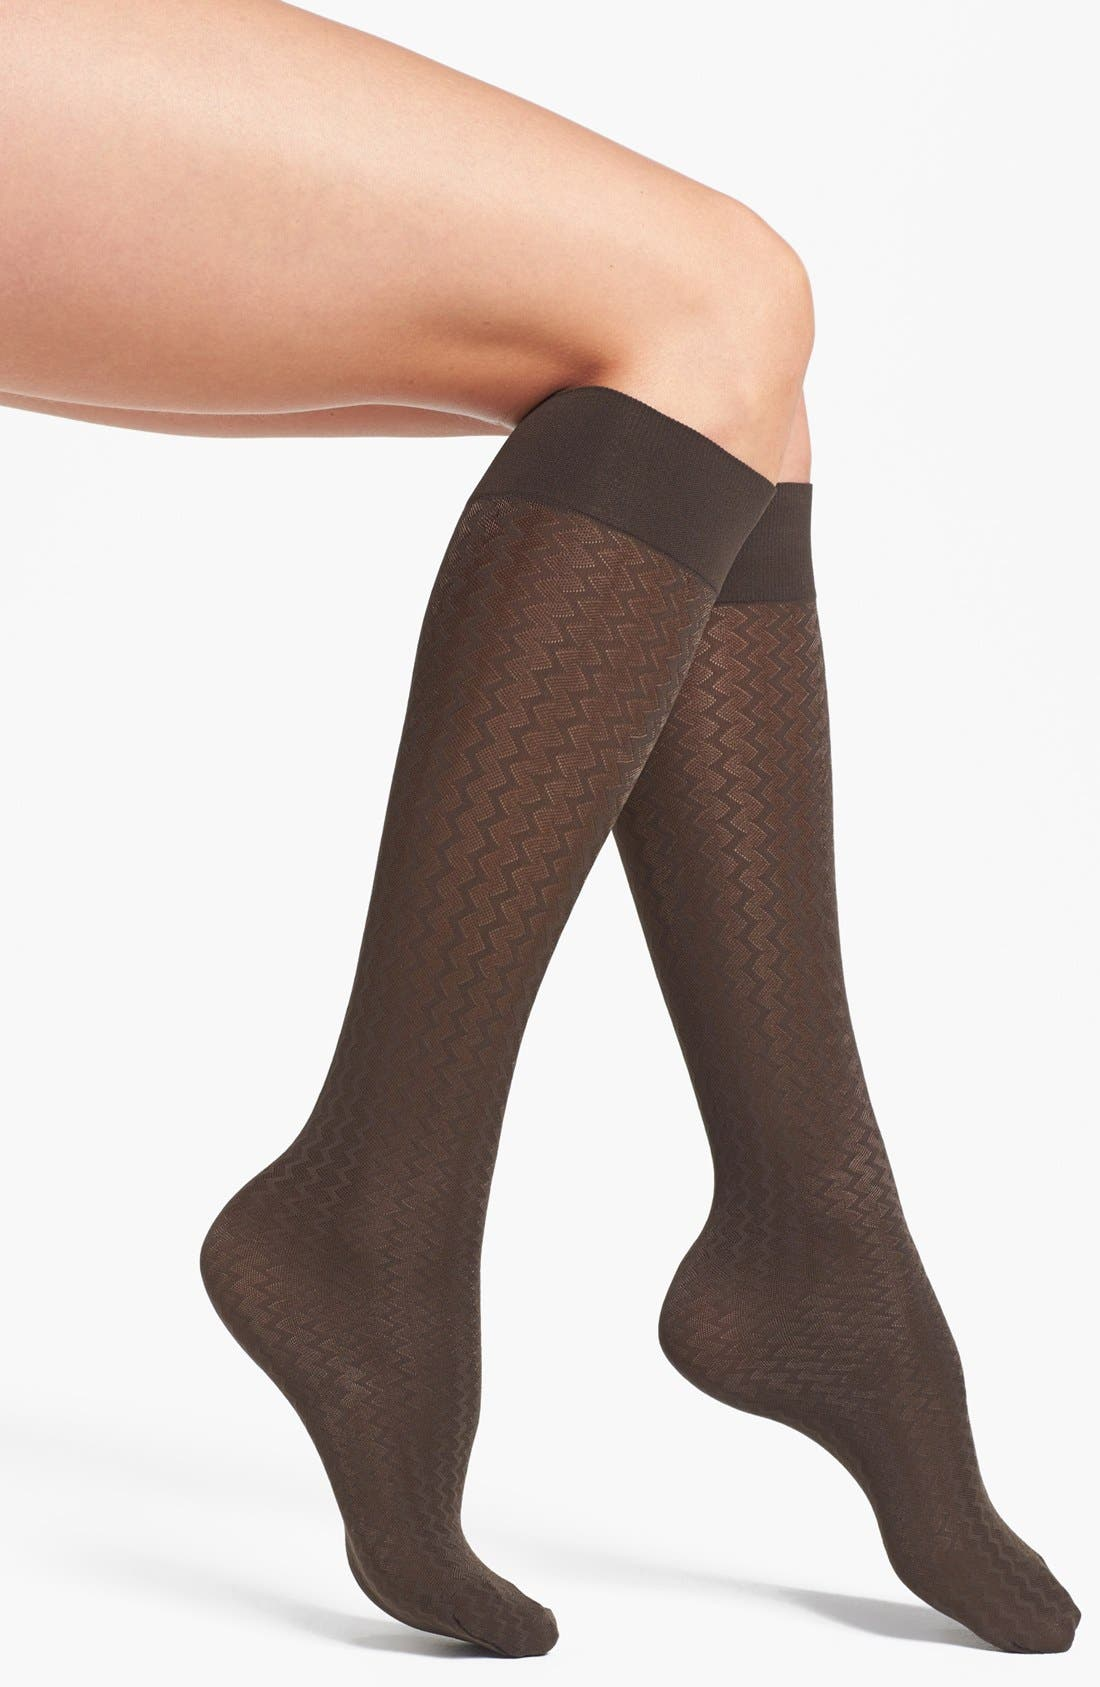 Alternate Image 1 Selected - Wolford 'Cross Lines' Knee High Socks